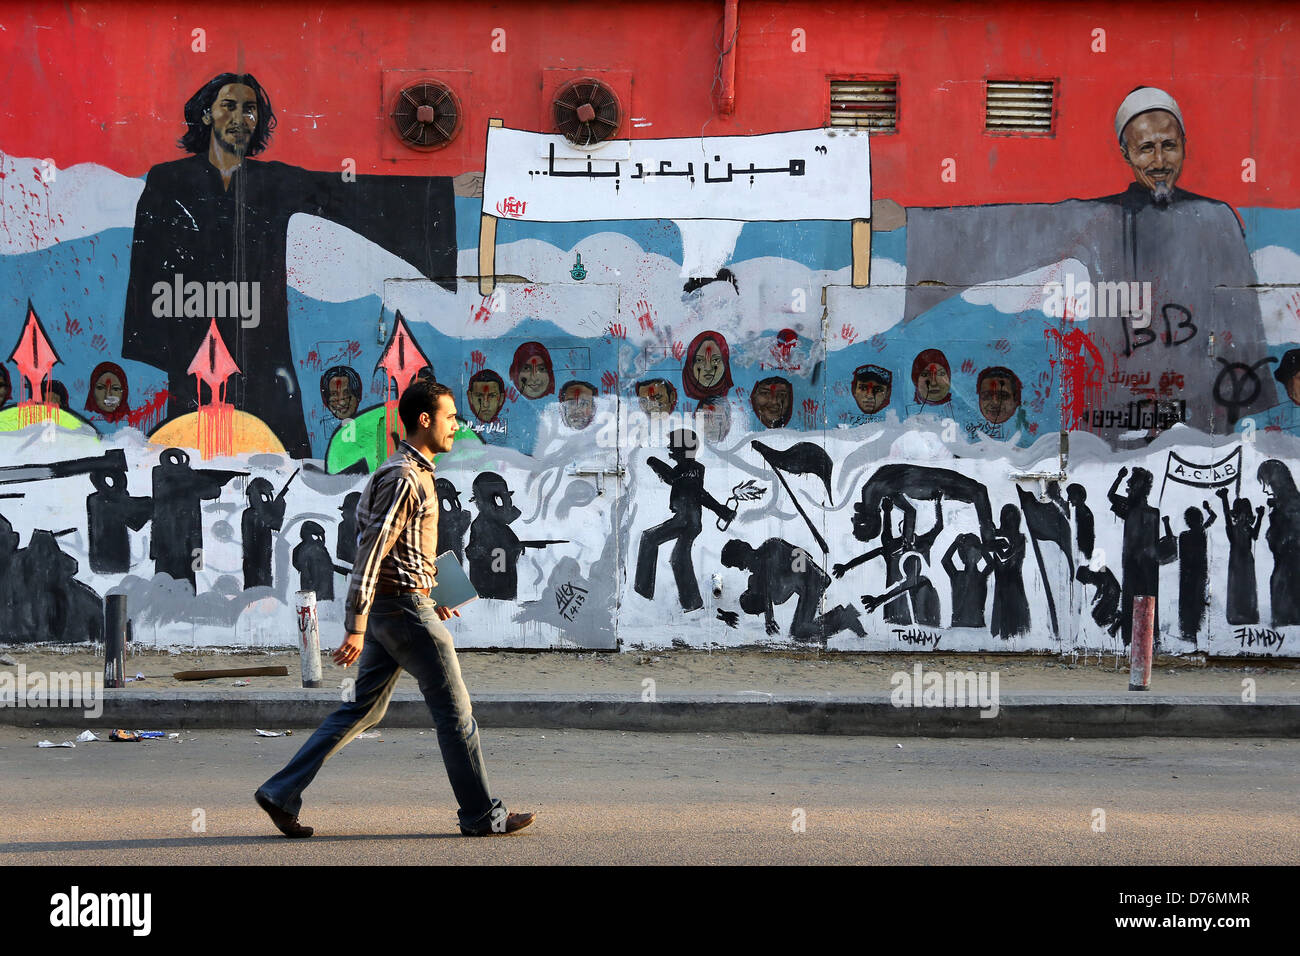 Man walks in front of a revolutionary mural on a wall of martyrs near Tahrir Square in Cairo. - Stock Image